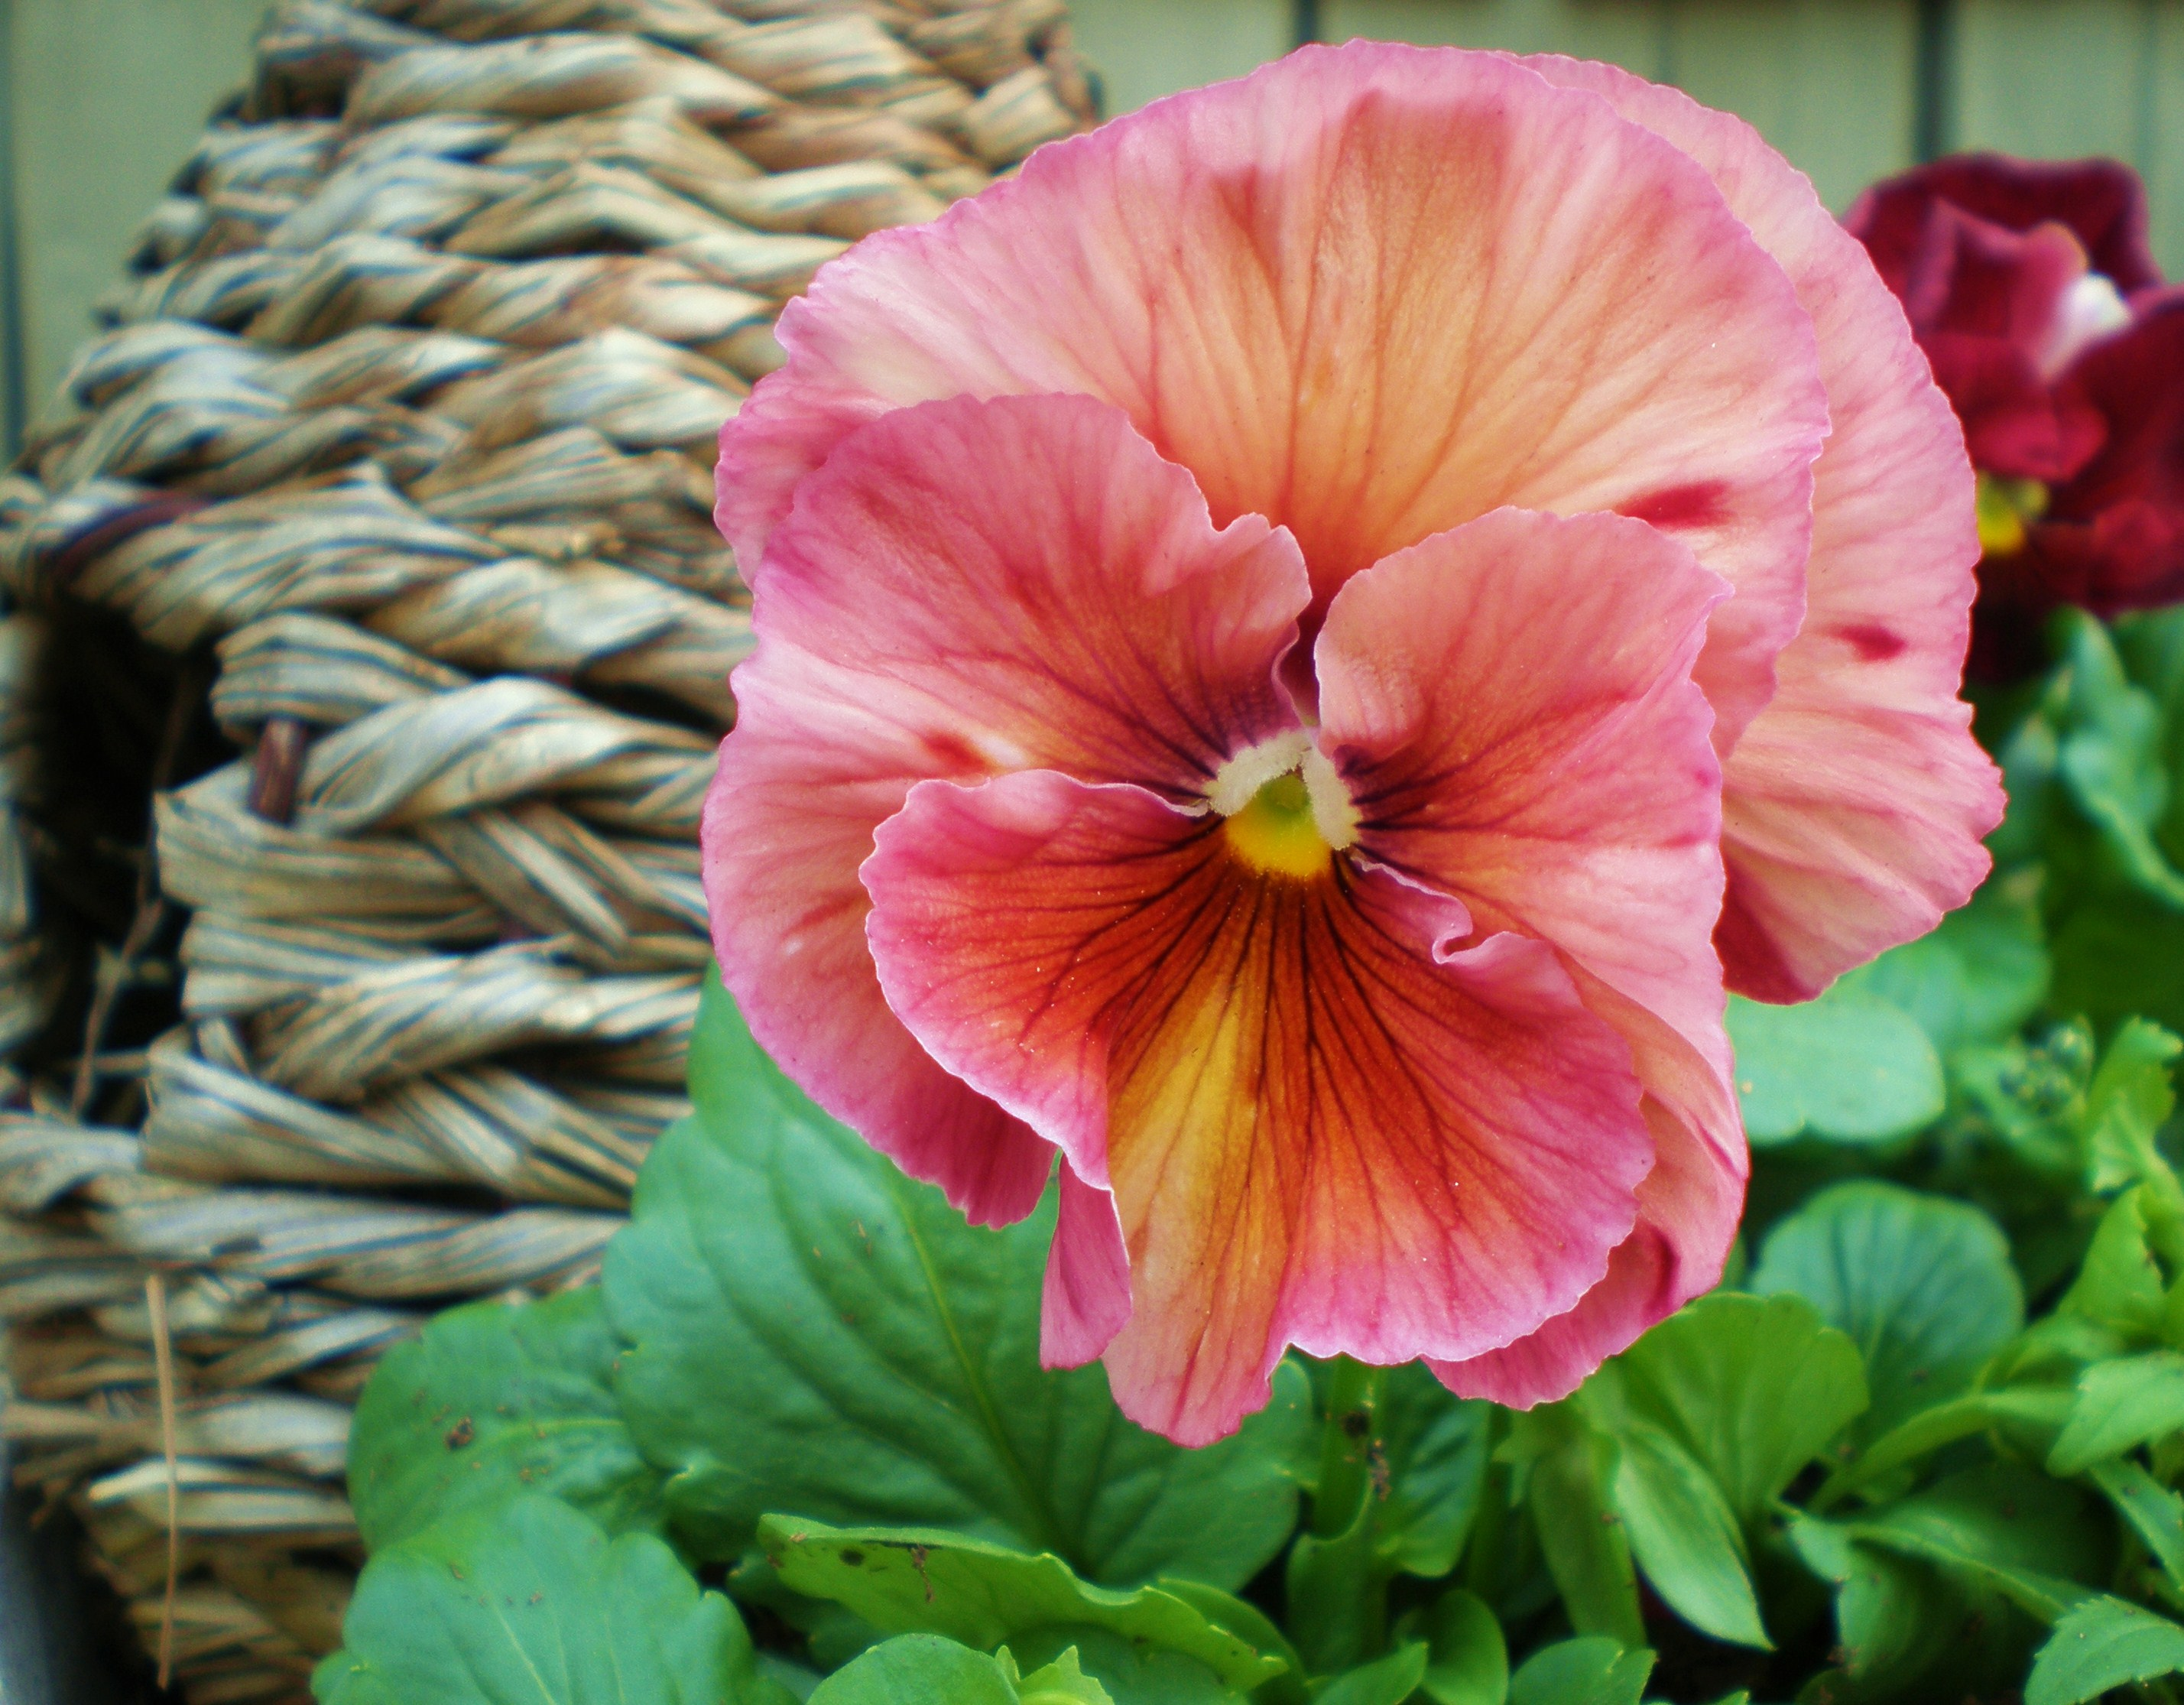 Pansy pink antique3 rose cottage gardens and farm 2230 pixels mightylinksfo Choice Image